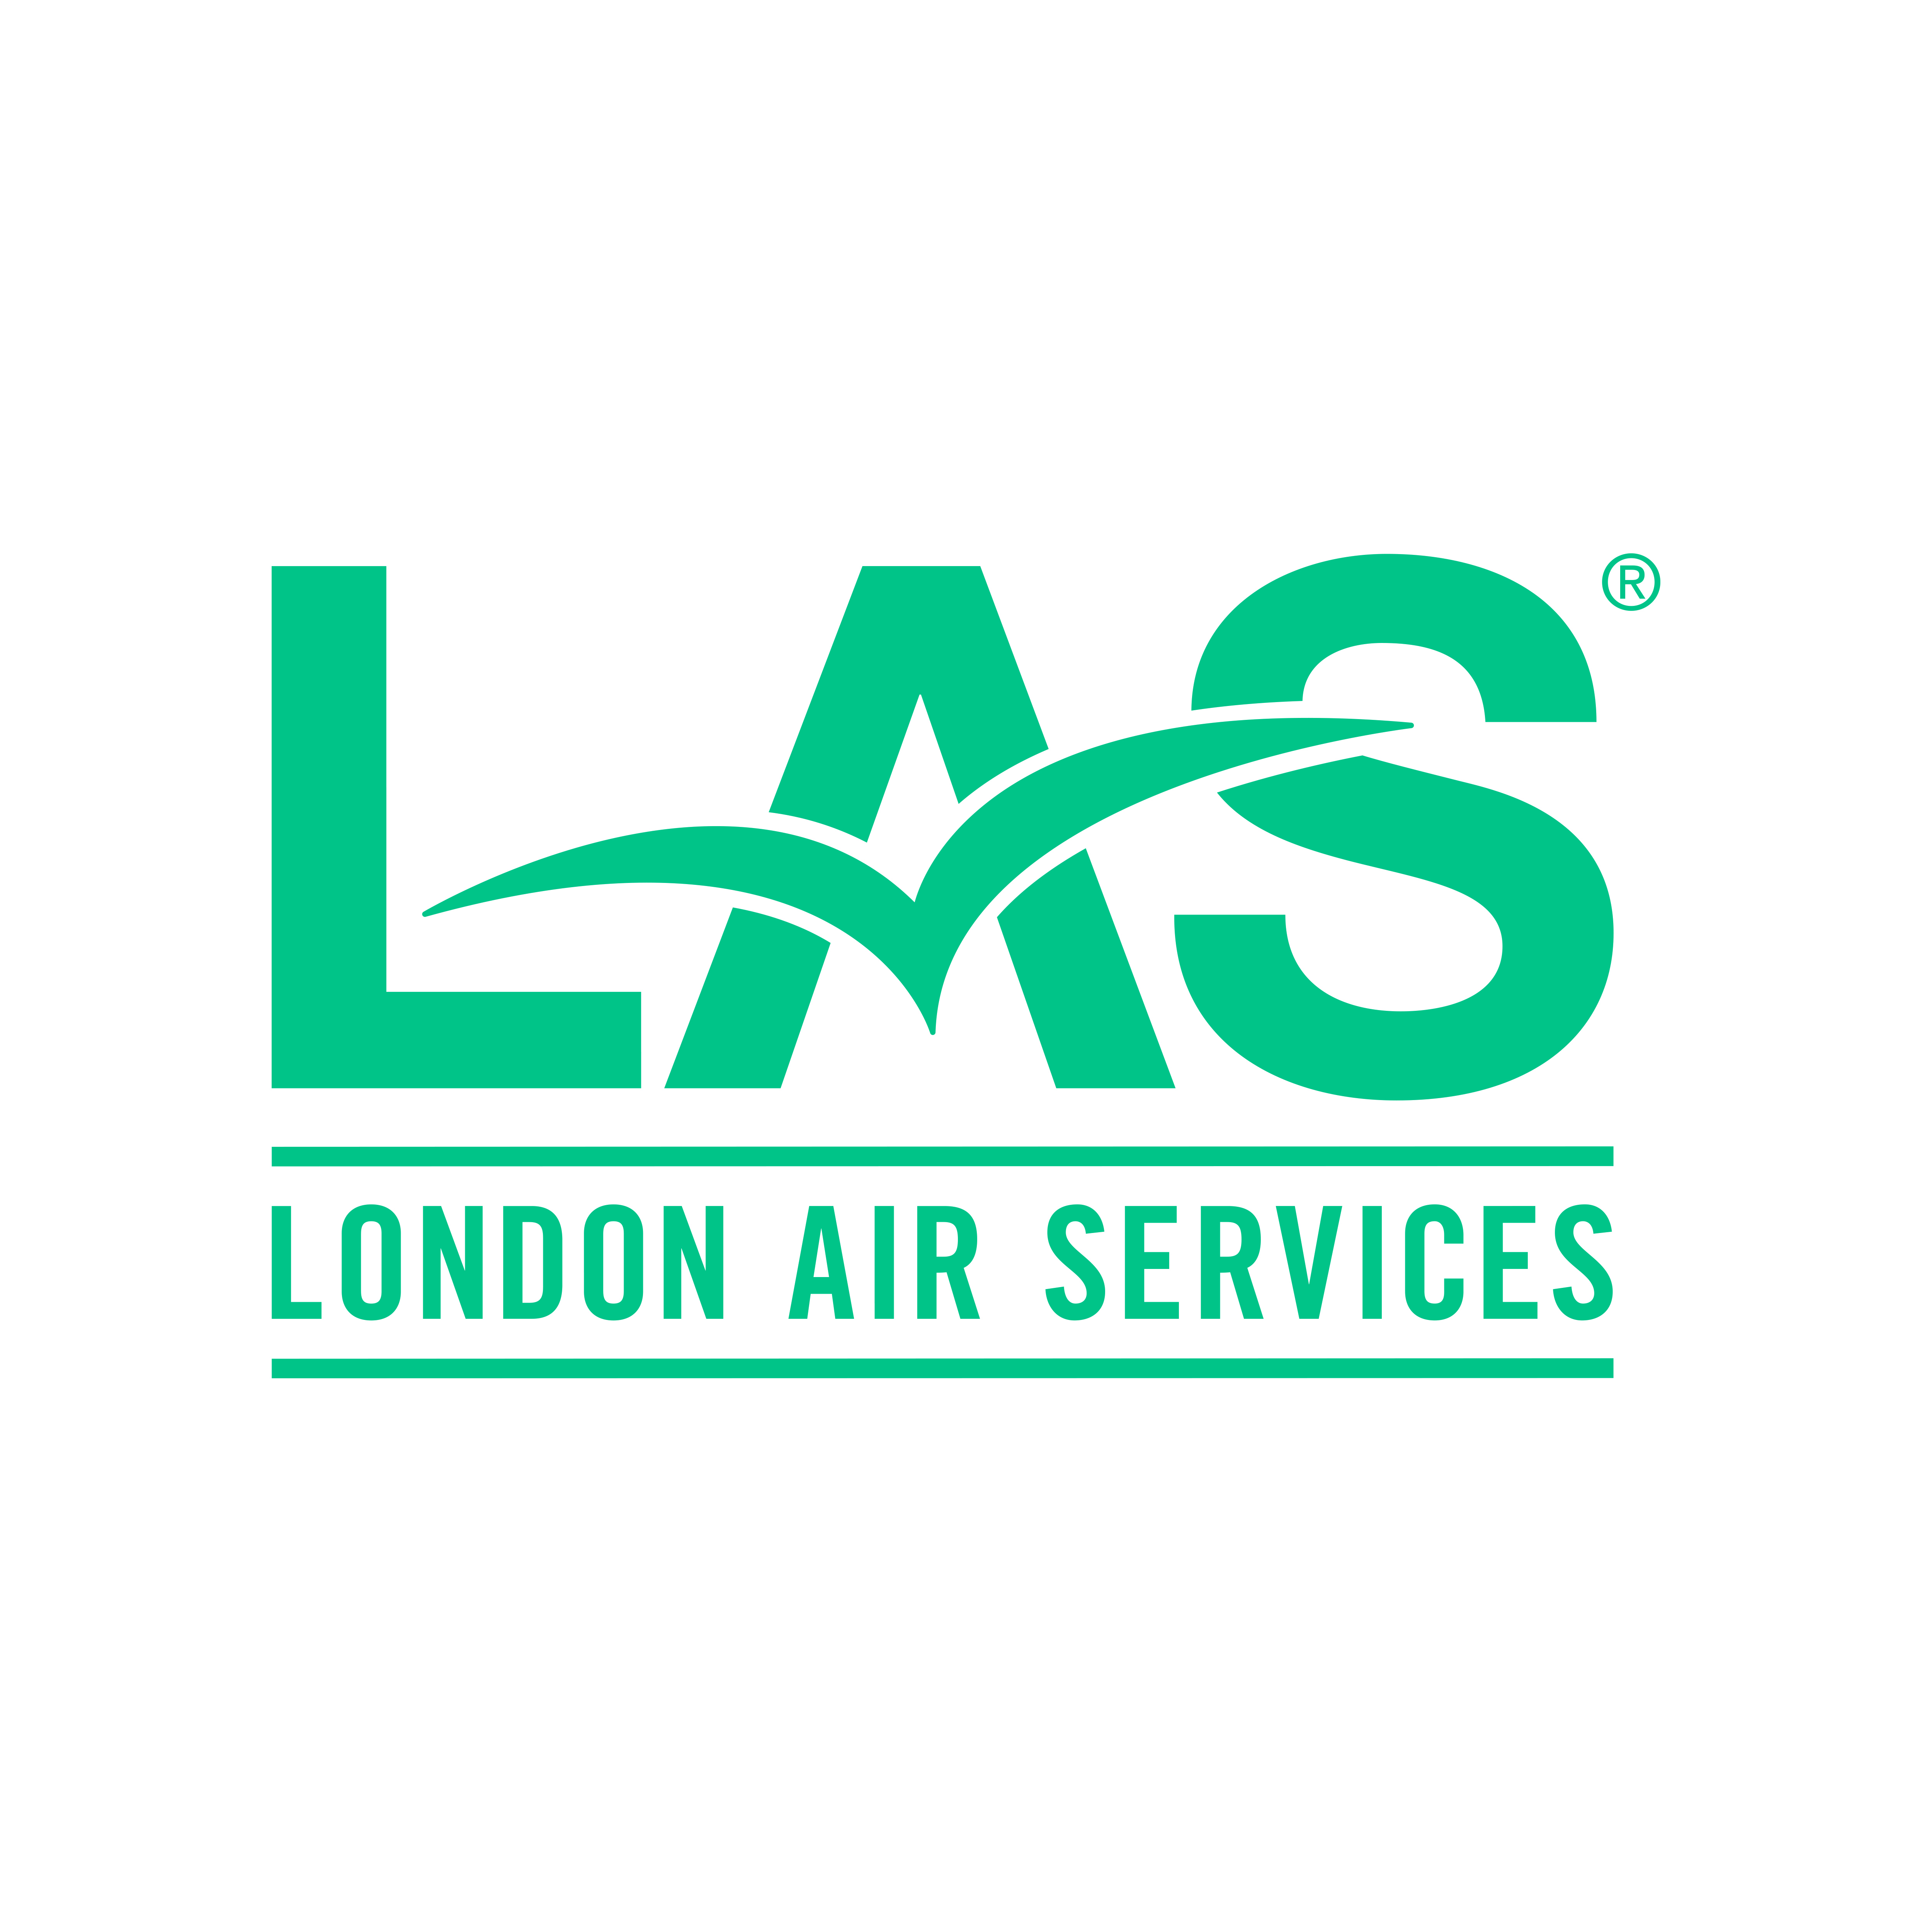 London Air Services